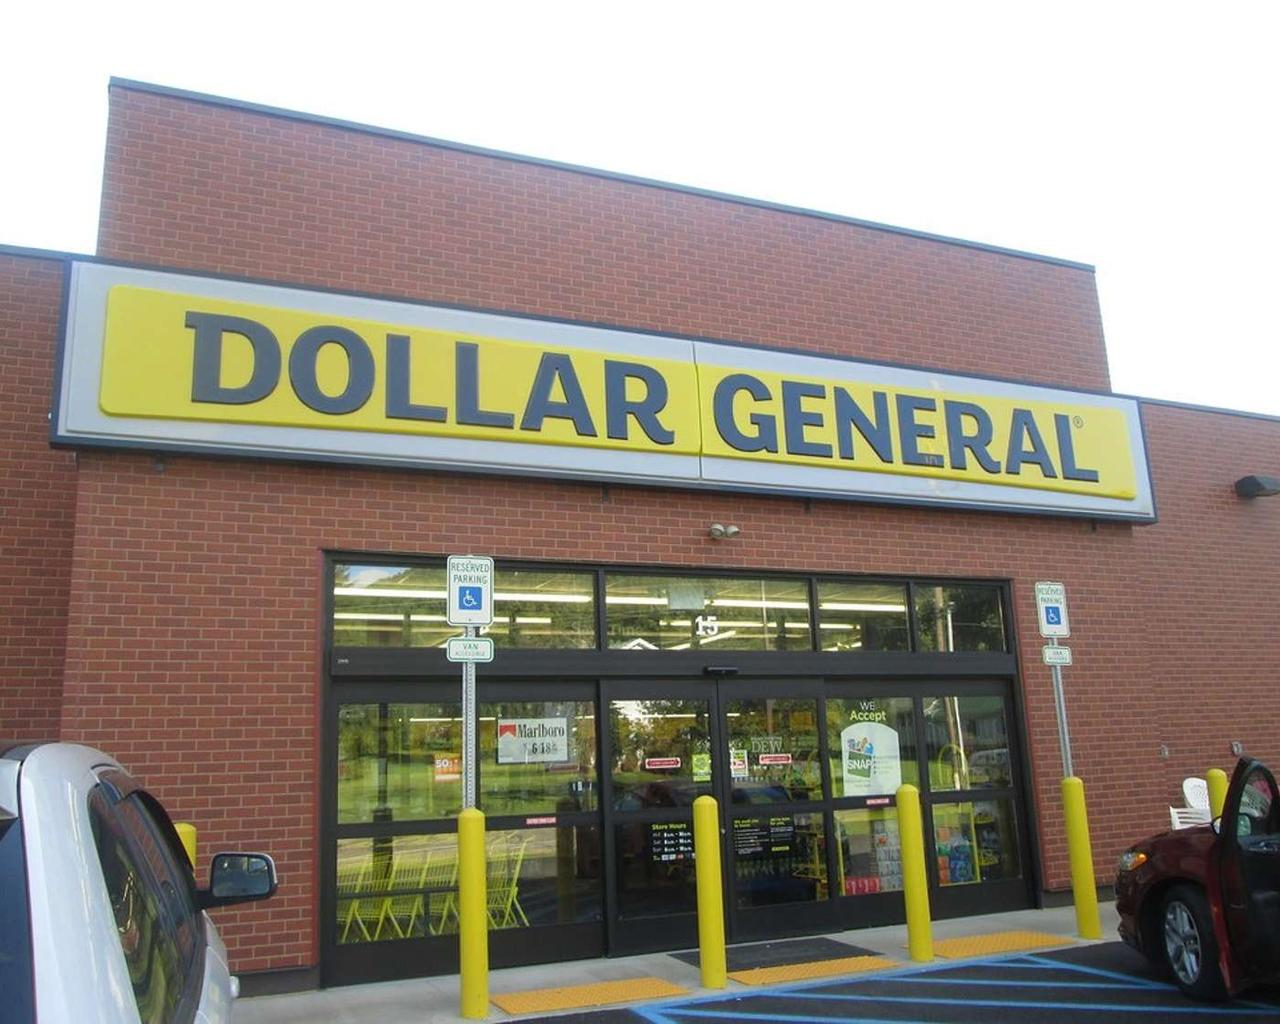 Dollar Stores As Of Yet To Feel Effect Of New Tariff's—Is Their Time Coming?